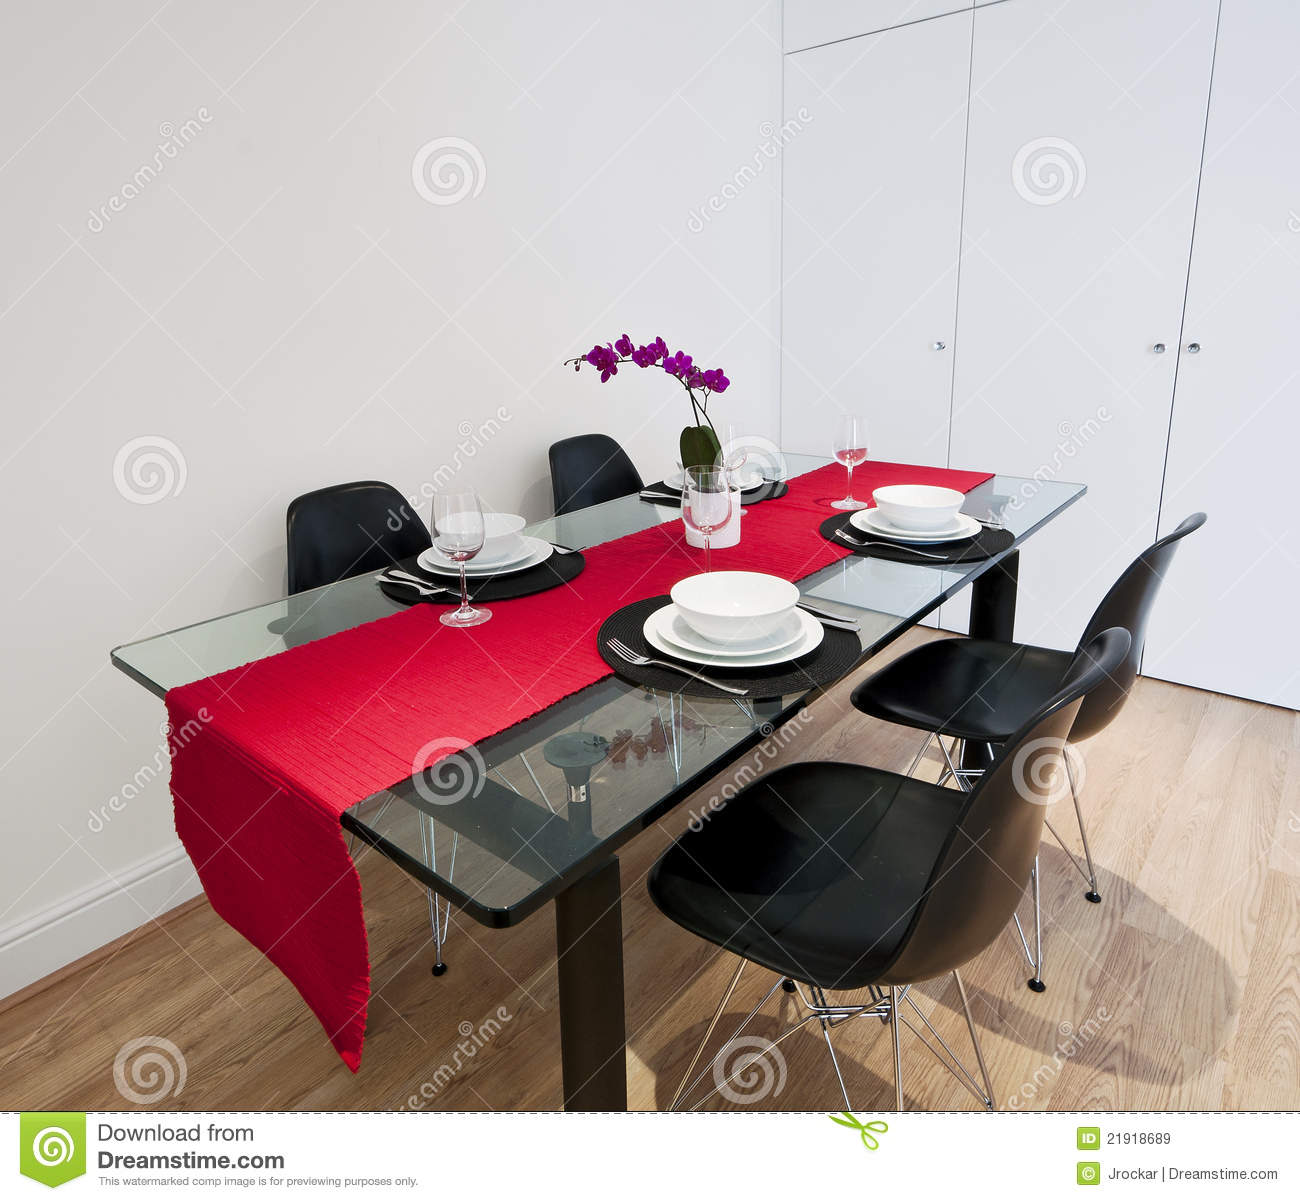 Dining Table With Red Cloth Royalty Free Stock Images  : dining table red cloth 21918689 from www.dreamstime.com size 1300 x 1201 jpeg 142kB